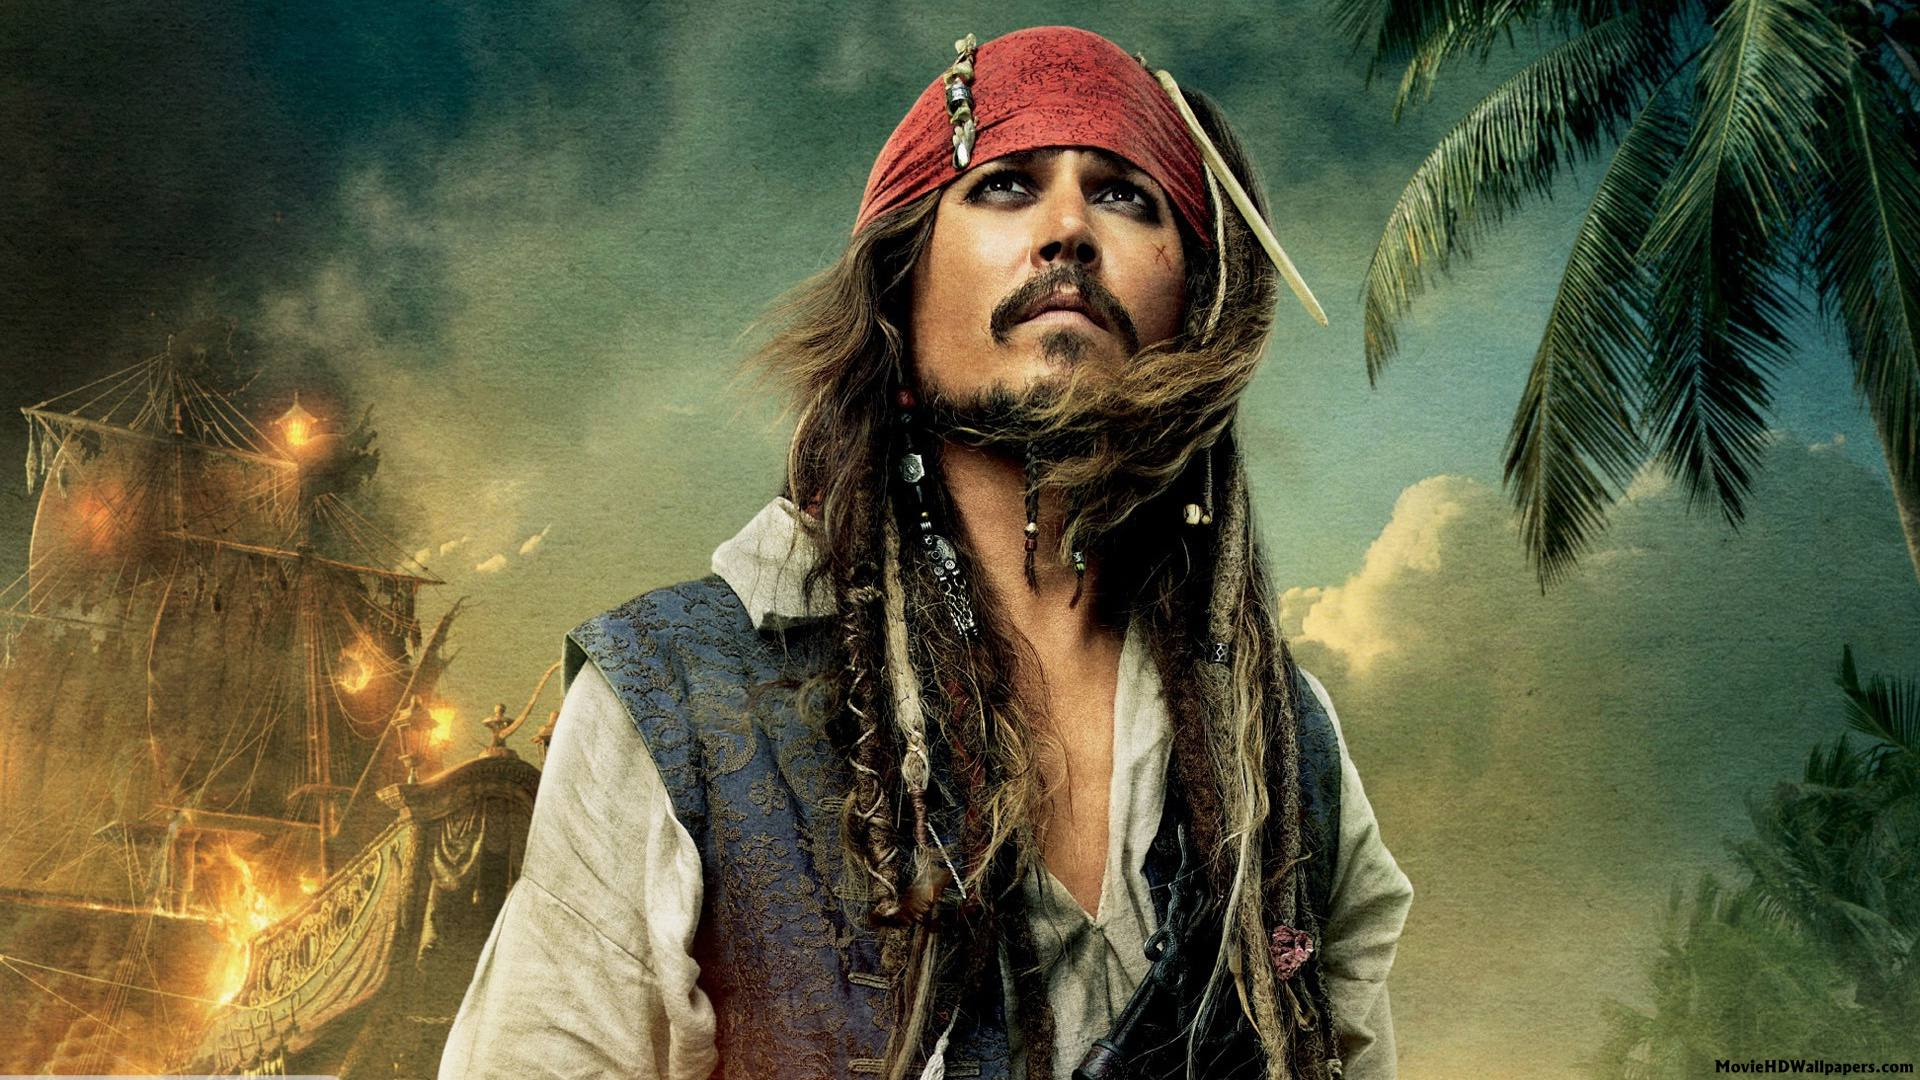 Pirate Wallpapers Hd Posted By Samantha Johnson